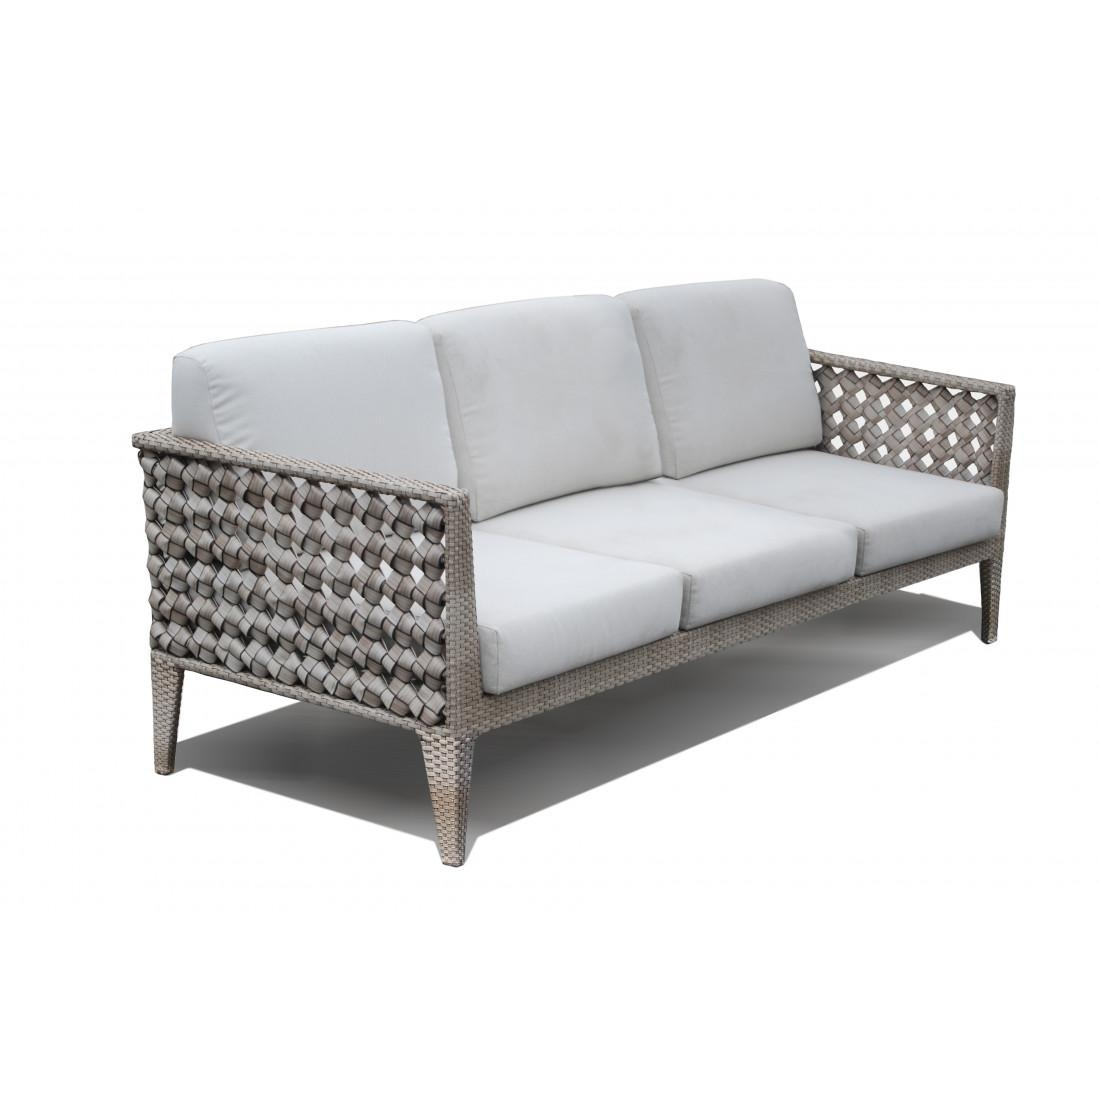 Outdoor Sofas – Heart Sofaskyline Design Intended For Skyline Sofas (Image 9 of 20)